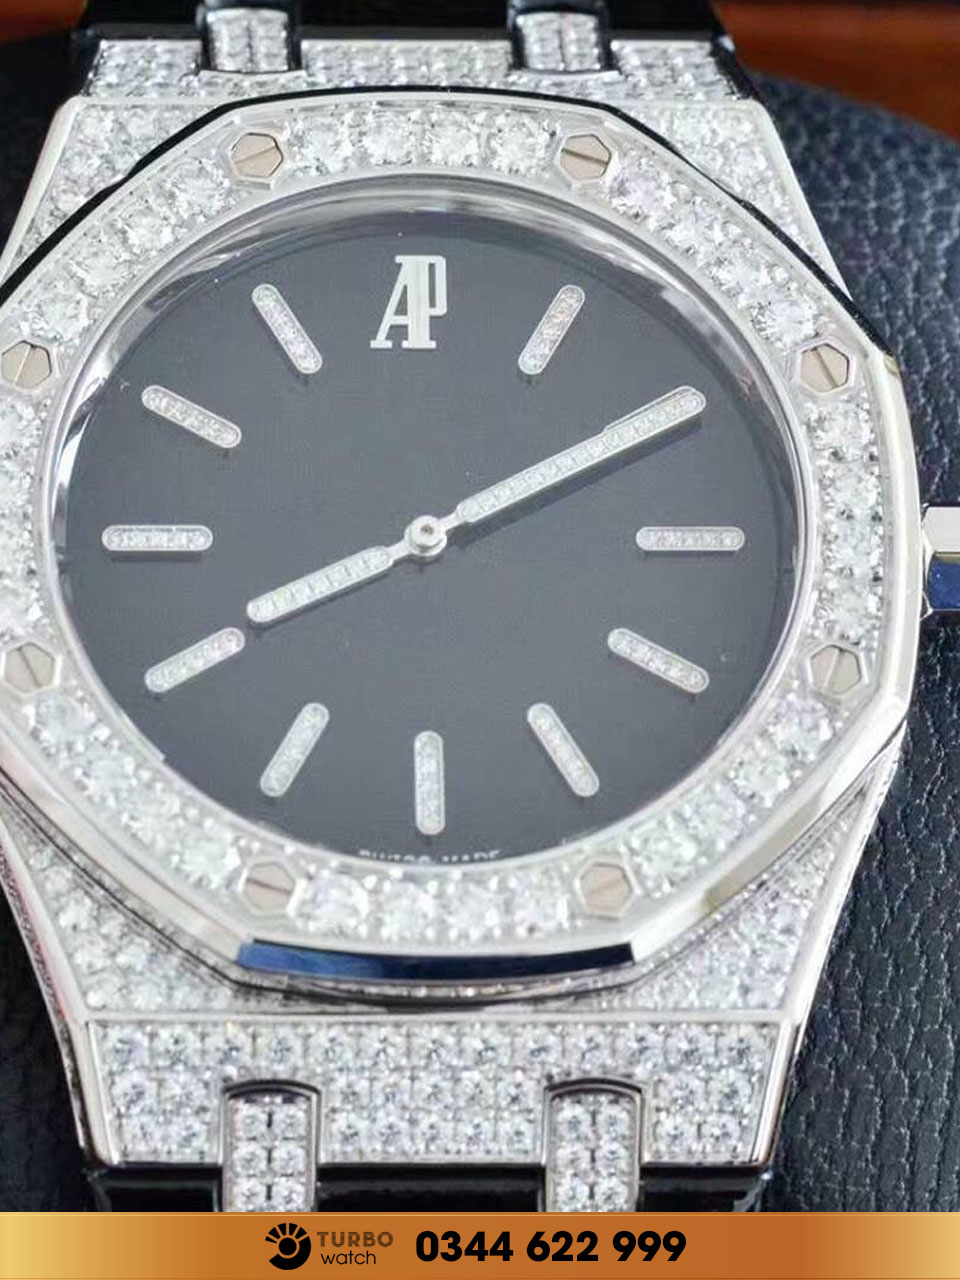 Audemas piguet  Royal Oak  extra thin black full diamond fake 1-1 siêu cấp